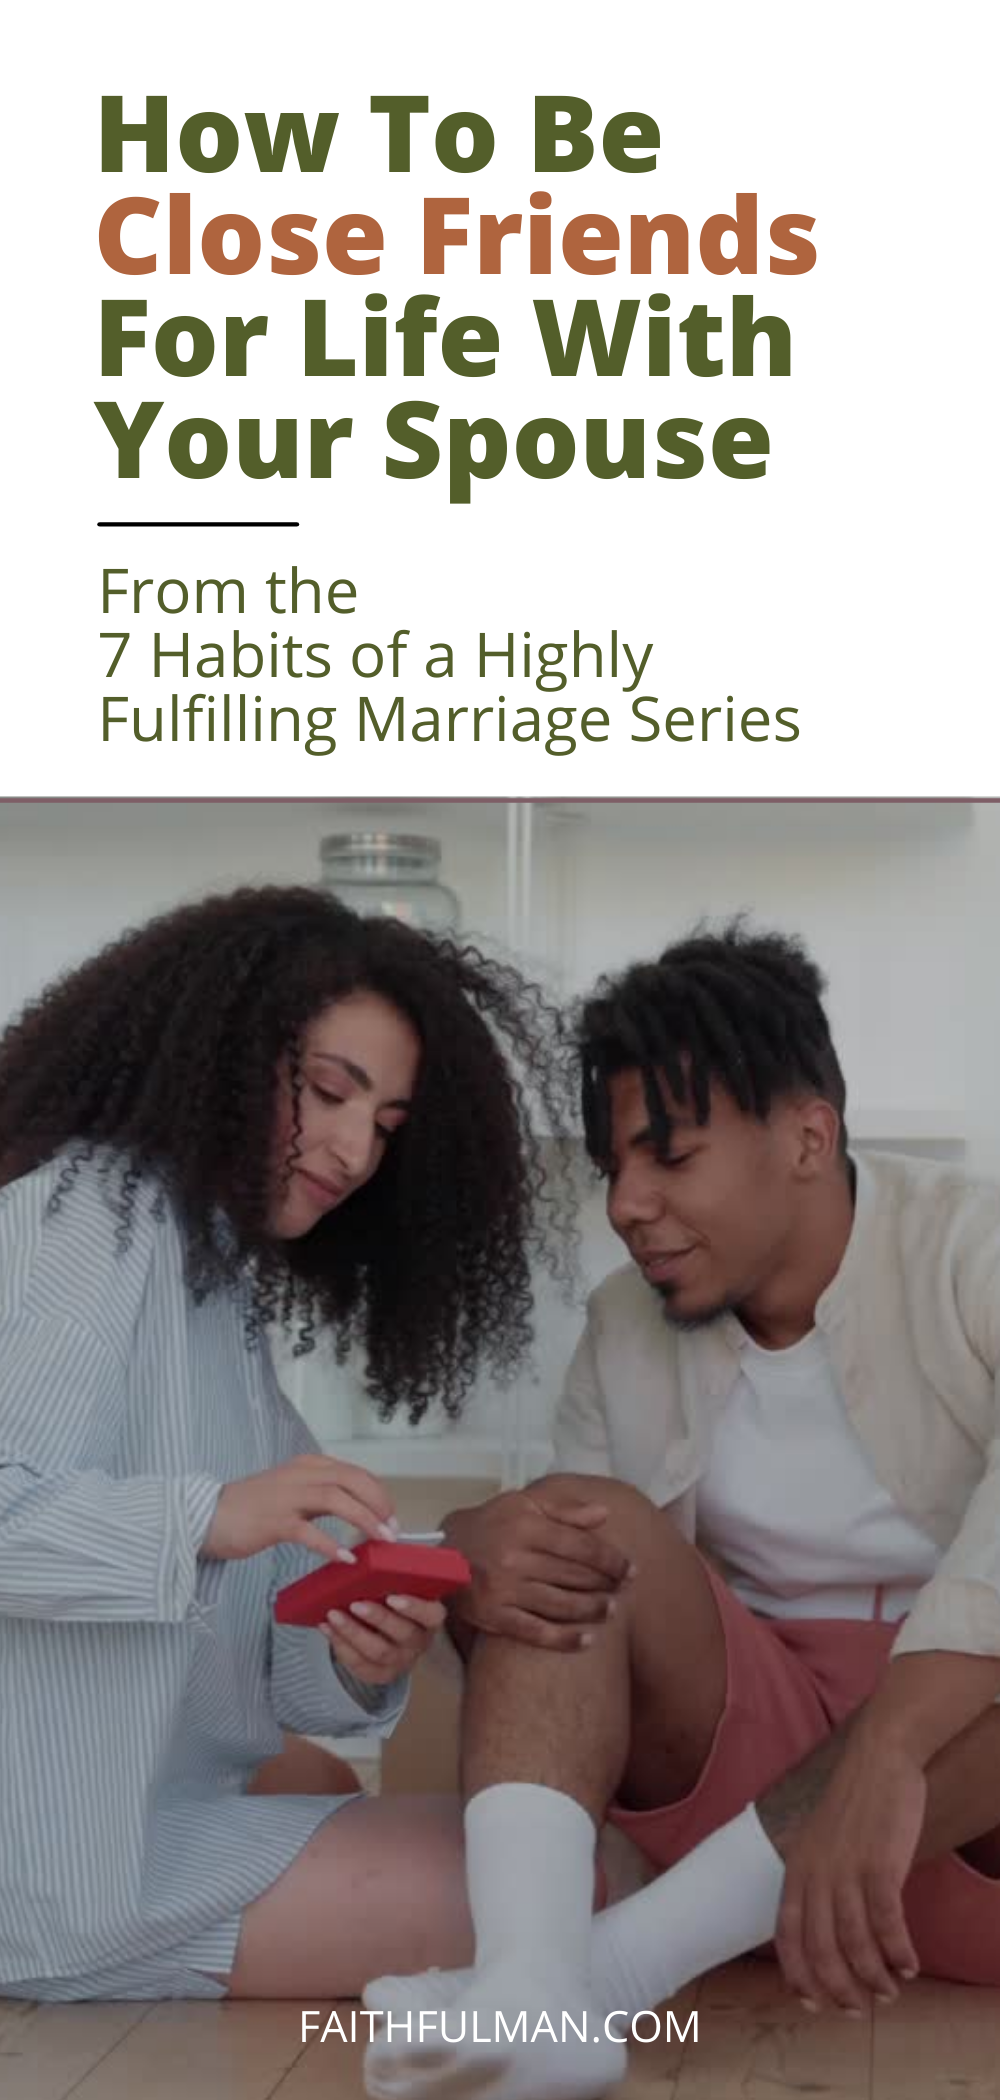 """How do you start in pursuing a lifelong friendship with your spouse? When it comes to having a friendship, God says you need to initiate the process. Proverbs 18:24 – """"If you're going to have friends, you must be friendly"""" (MLJV). via @faithful_man"""